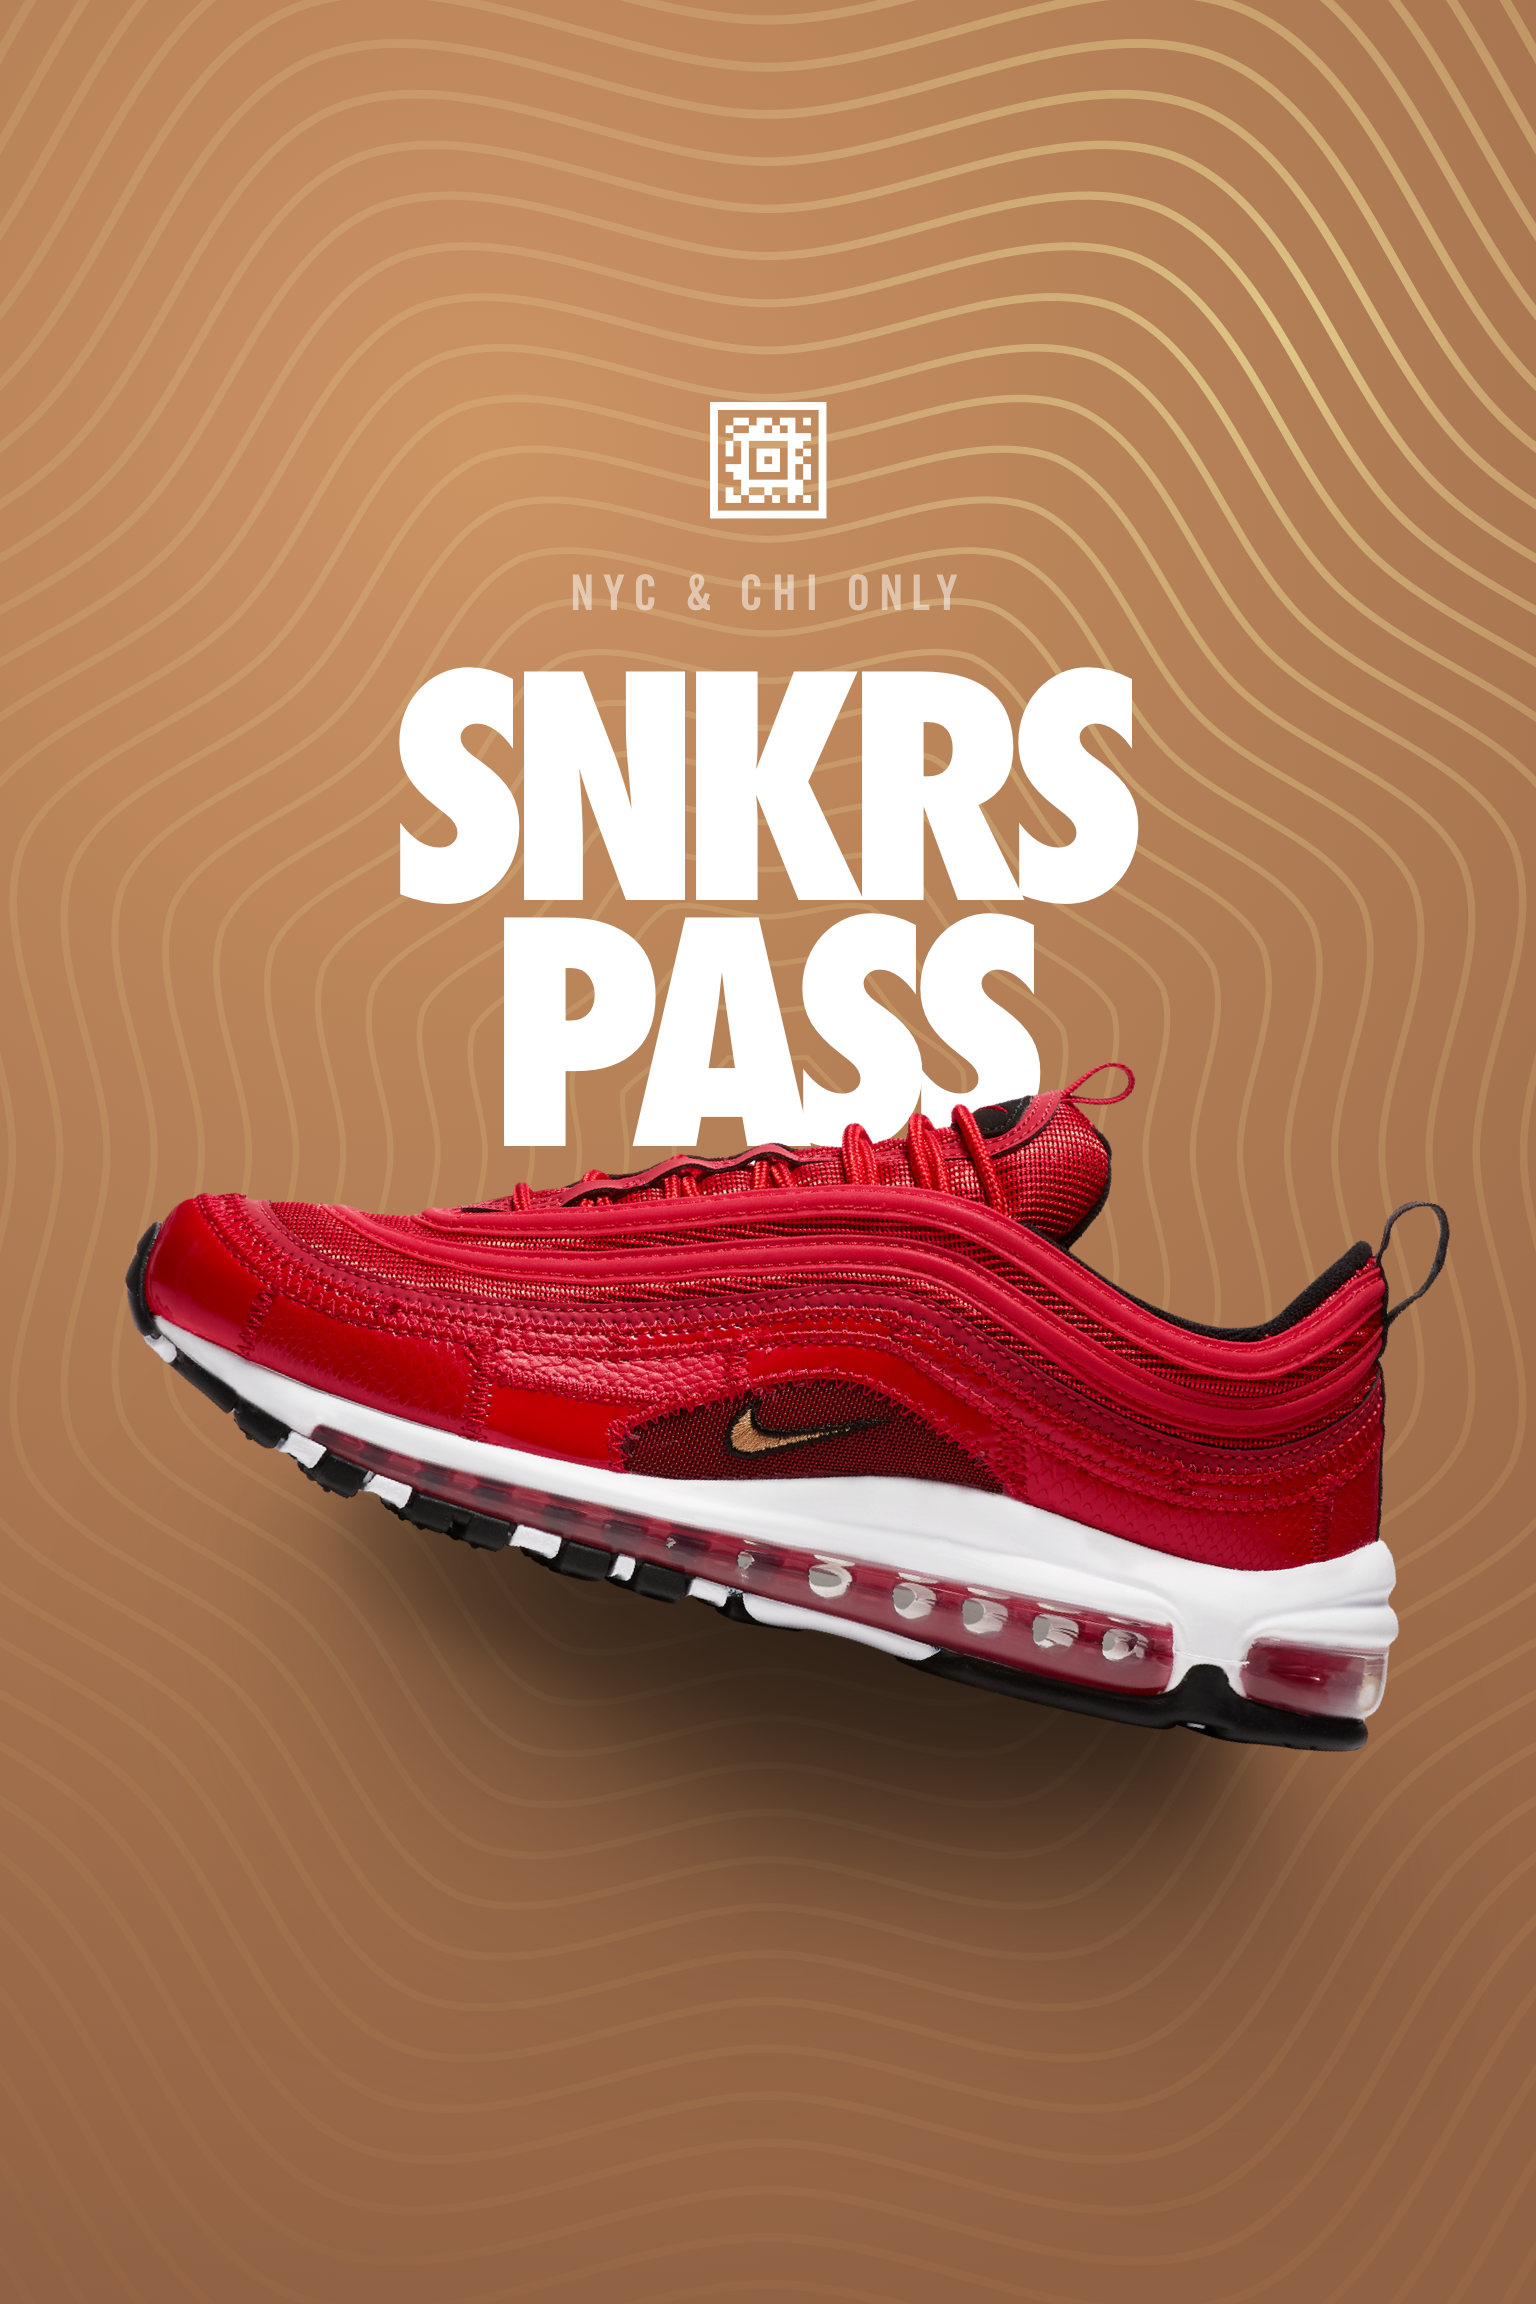 d4c7dbe0f6d9ff Nike Air Max 97 CR7  Portugal Patchwork  SNKRS Pass NYC   Chicago ...